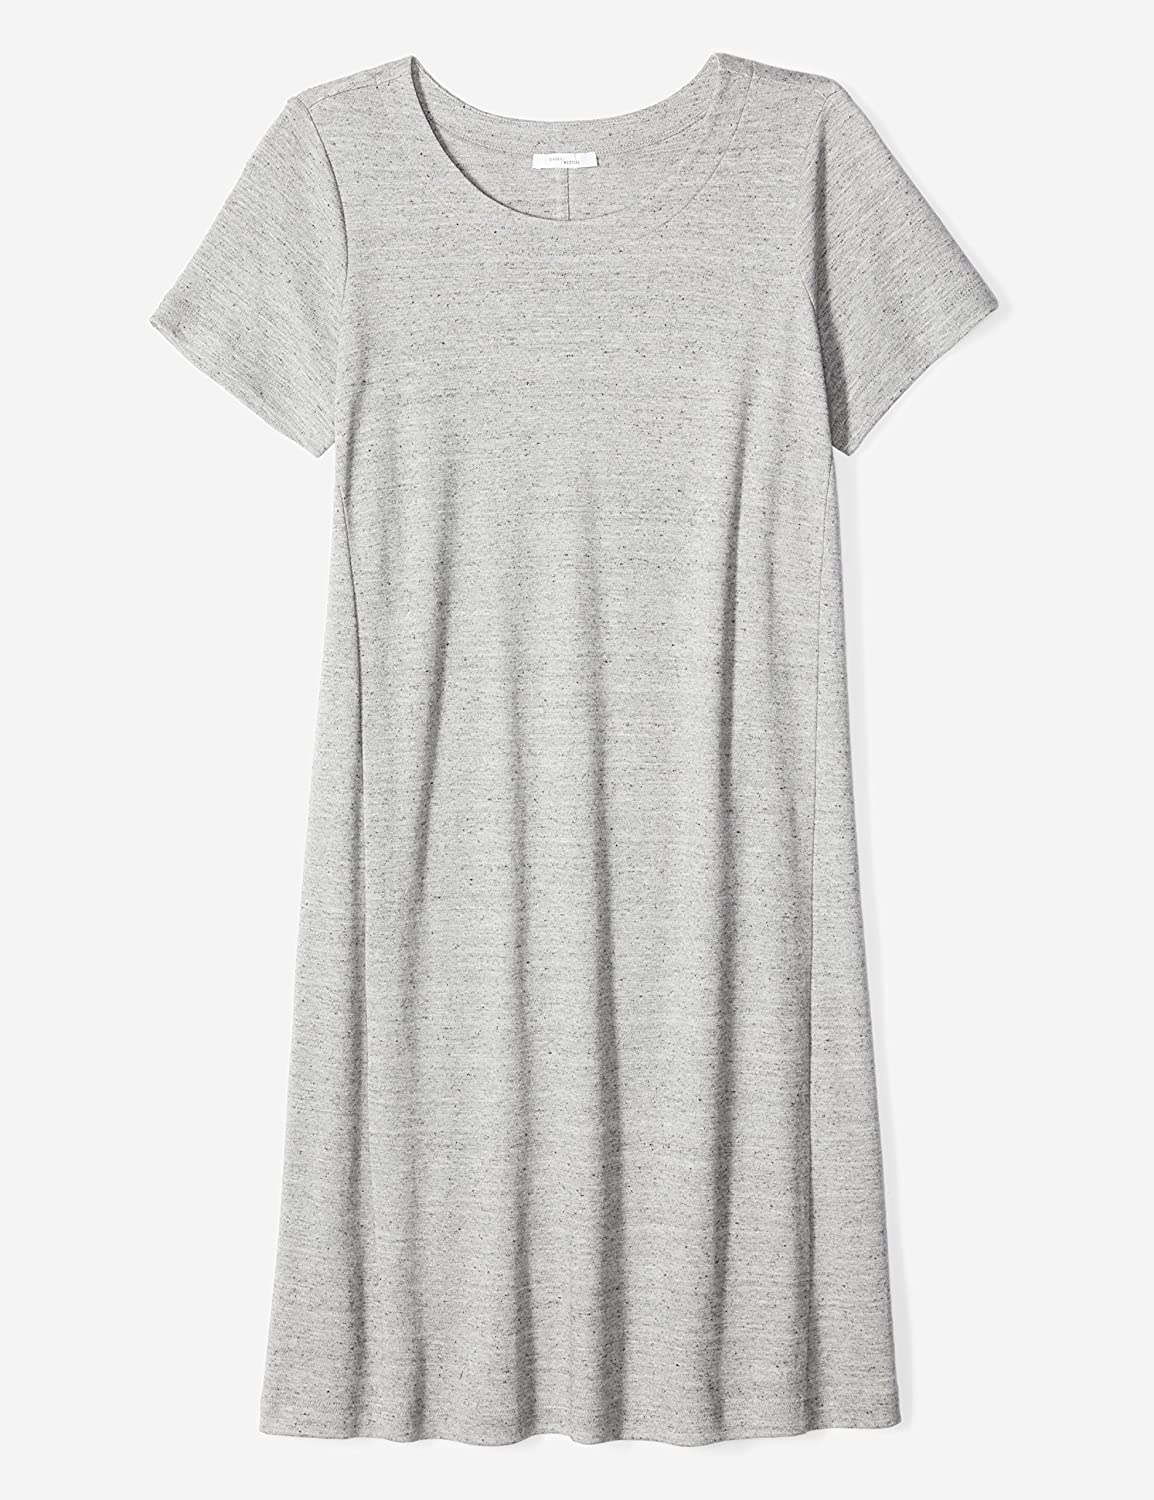 547a46b644dd Amazon.com  Daily Ritual Women s Plus Size Pima Cotton and Modal  Short-Sleeve Scoop Neck Dress  Clothing